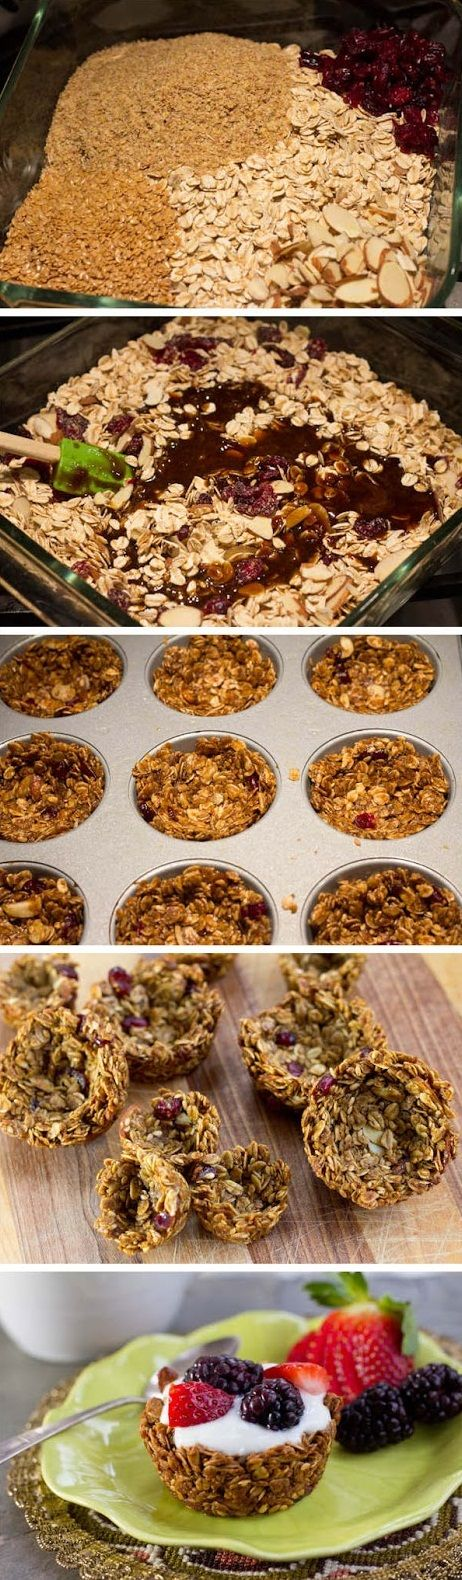 How cute are these granola cups? Perfect filled with yogurt and topped with fruit! For more grain-filled recipes, health tips, and interesting articles: http://www.grainsforyourbrain.org/?utm_source=pinterestutm_medium=socialutm_campaign=gffpins13